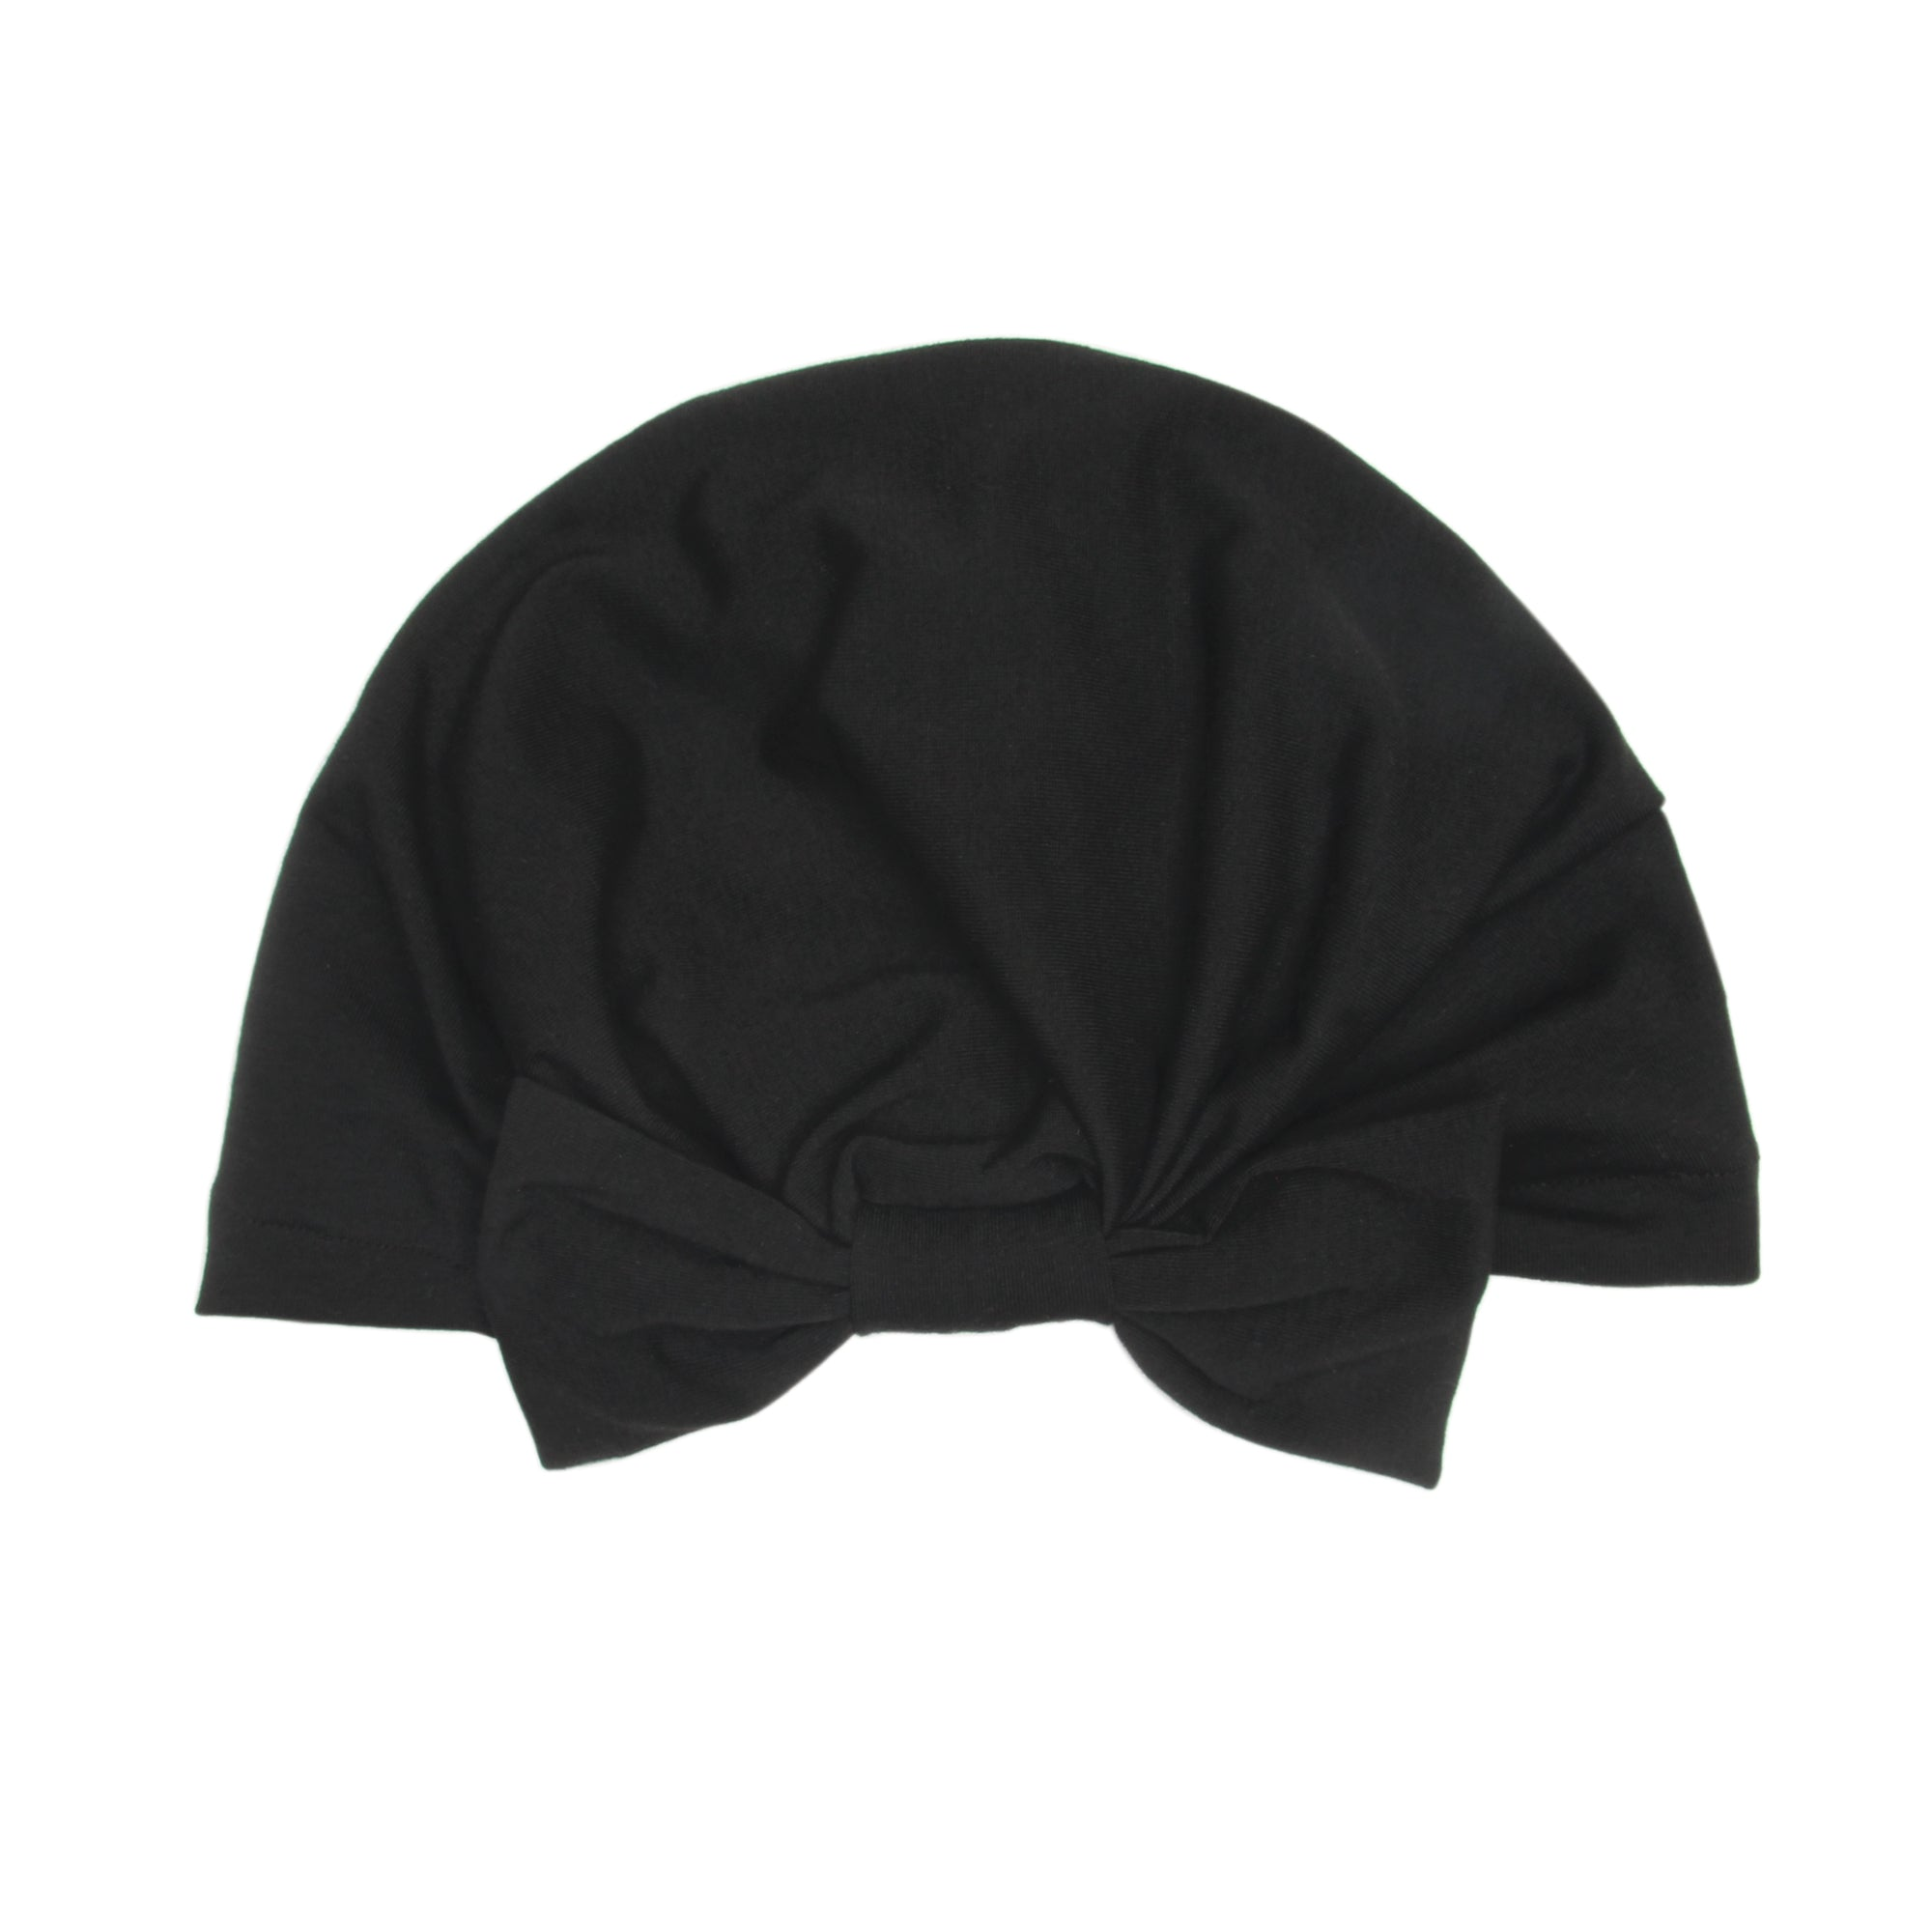 BANDED Women's Full Coverage Headwraps + Hair Accessories - Noir - Fashion Turban